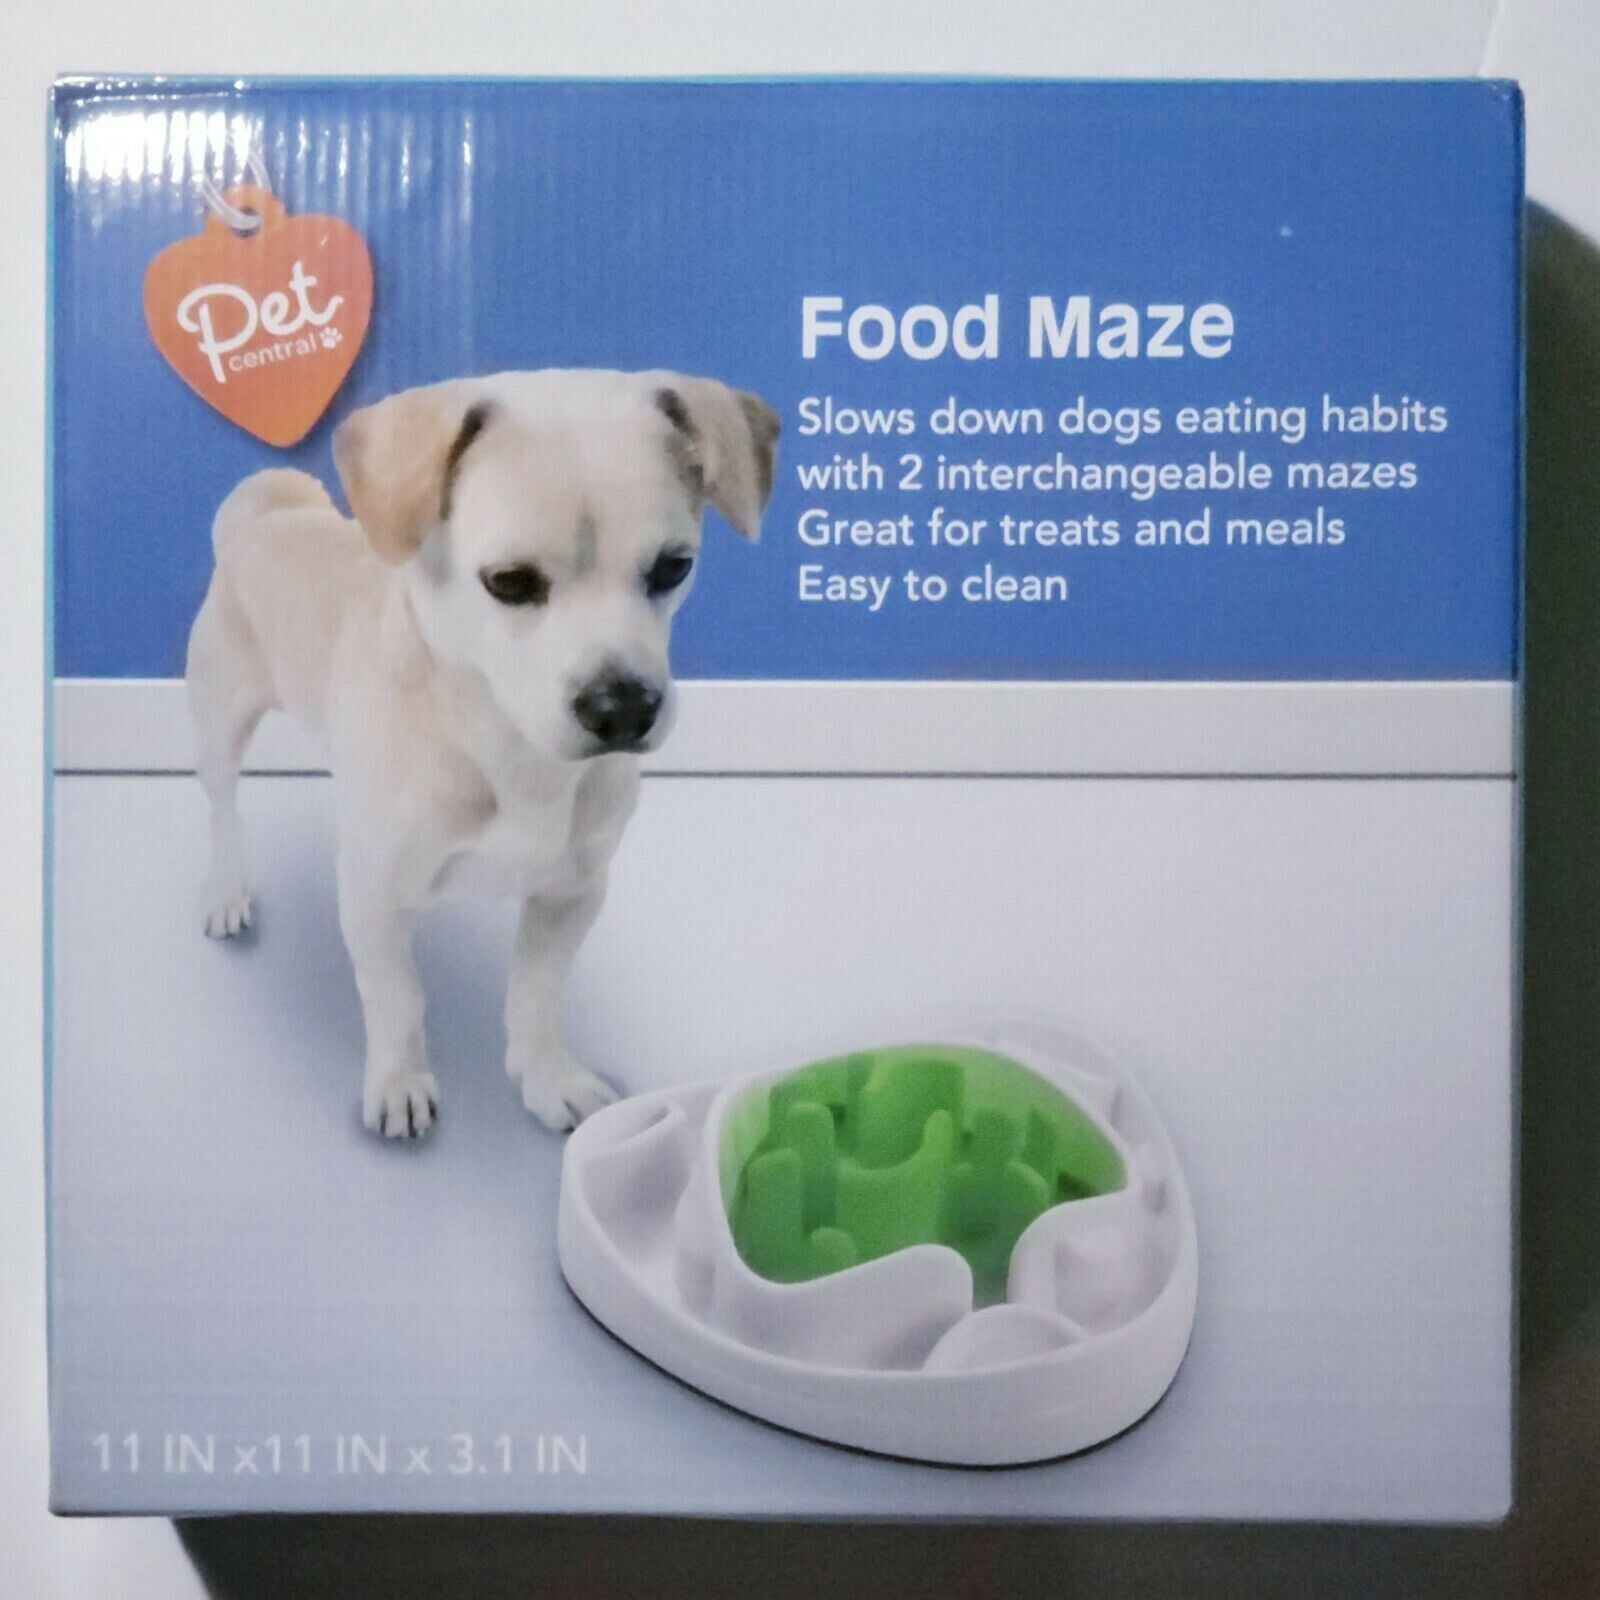 New Pet Central Feeding Maze - slow your pets eating - Two Food Mazes Easy Clean